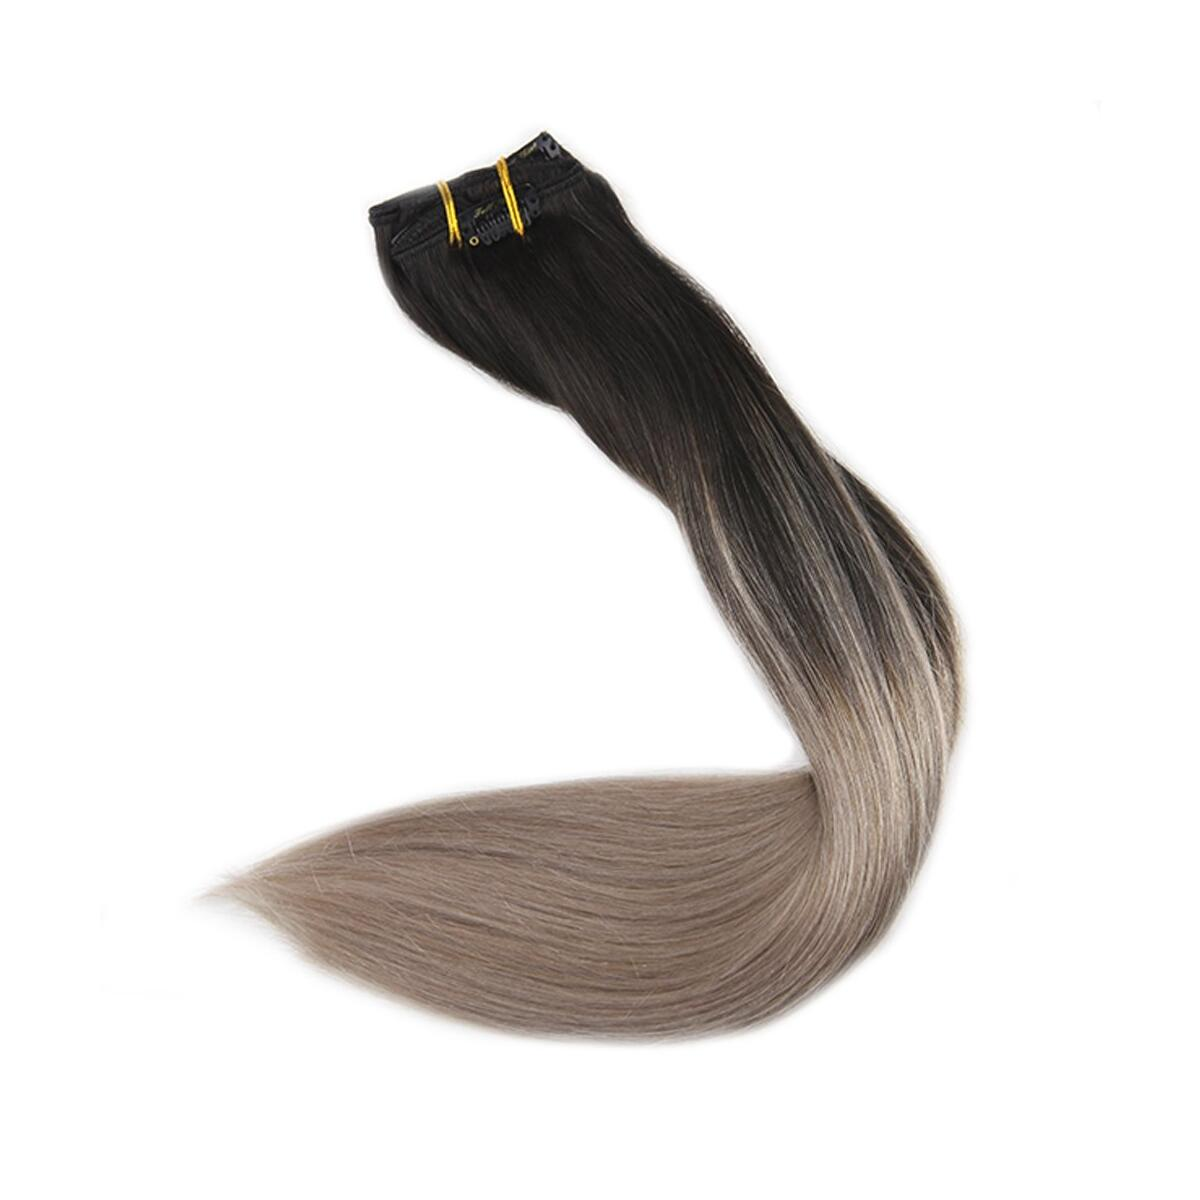 Fshine Clip In Human Hair Extensions 14 Inch 5 Pcs Double Weft Clip In Hair Extensions Balayage Color 1B Fading to 18 Ash Blonde Clip In Remy Hair 120 Gram Per Set